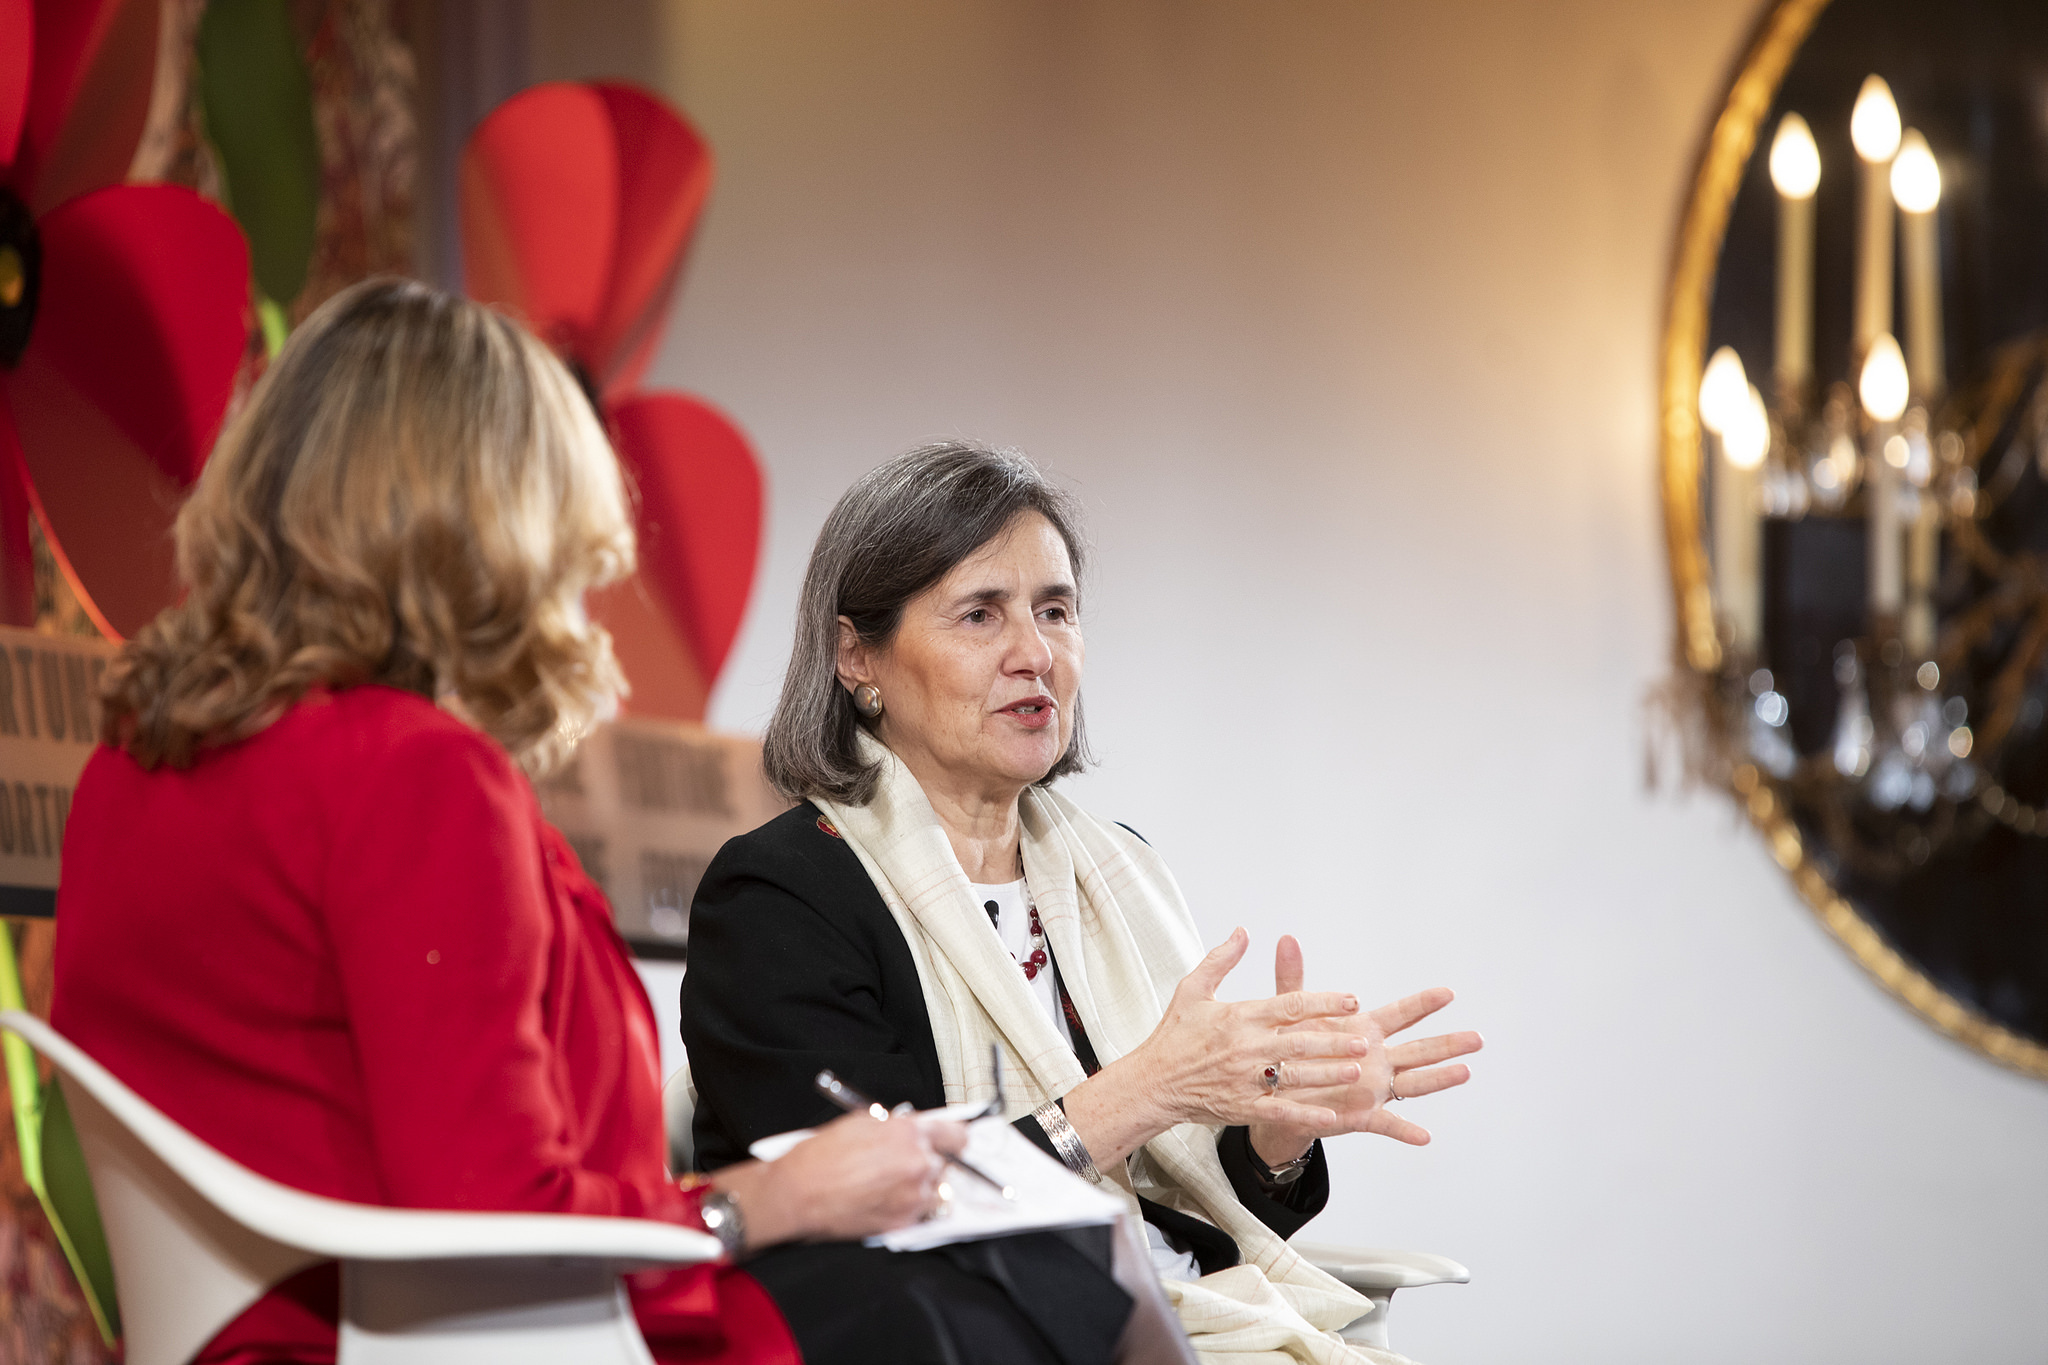 First lady of Afghanistan Rula Ghani speaks with Fortune's Nina Easton at the Fortune Most Powerful Women International conference in Montreal, Canada on Nov. 5, 2018.